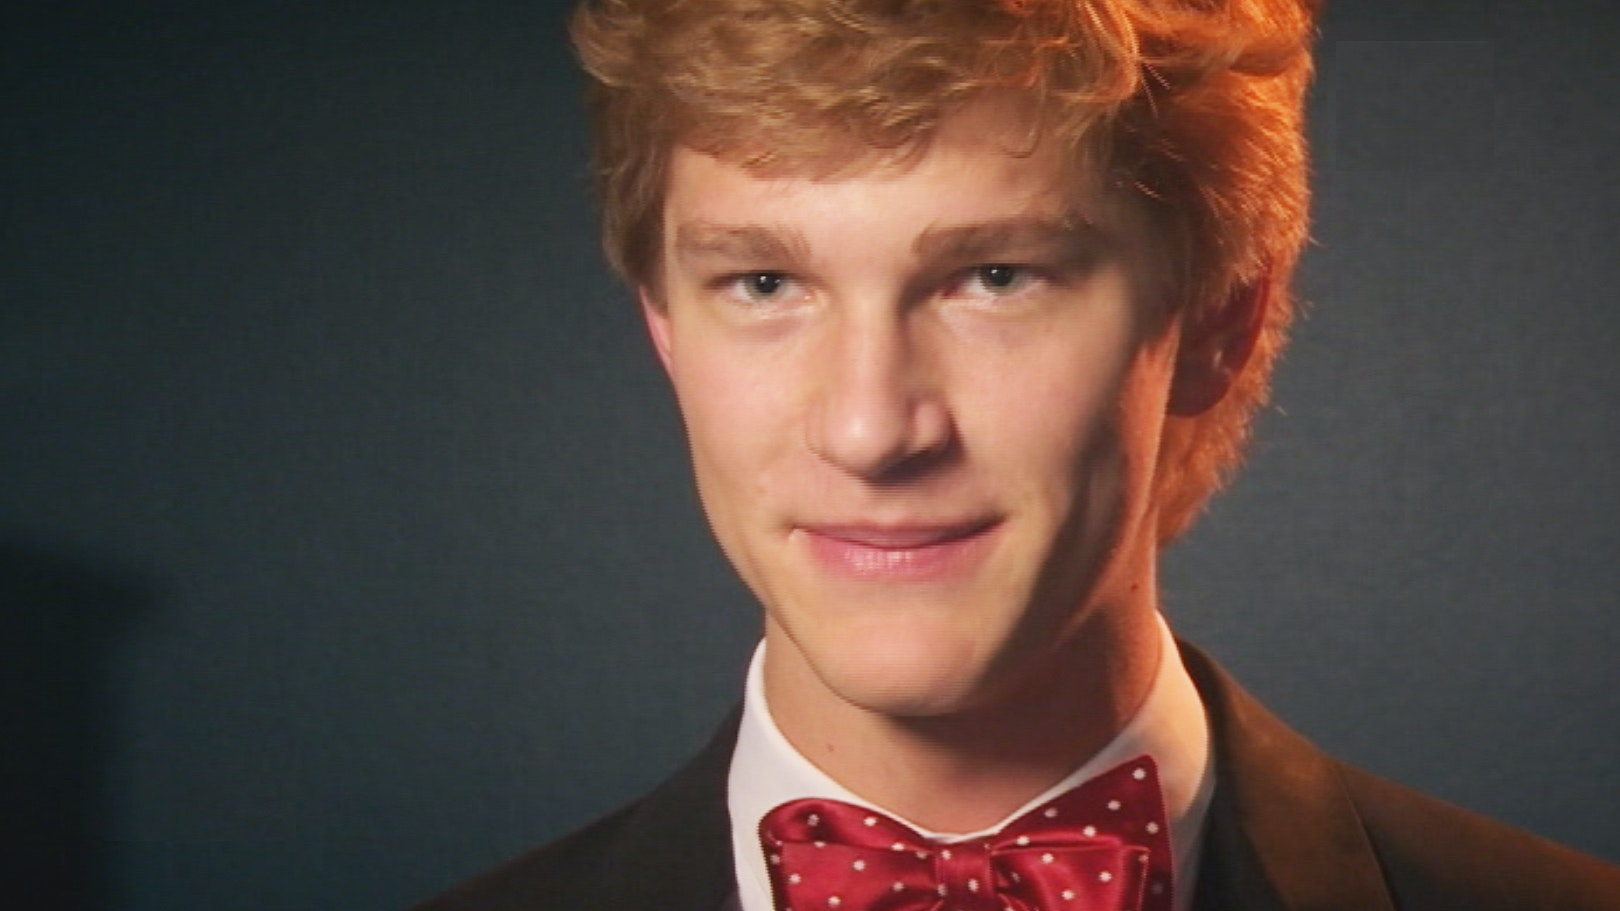 Philadelphia captivated by Polish Canadian pianist Jan Lisiecki